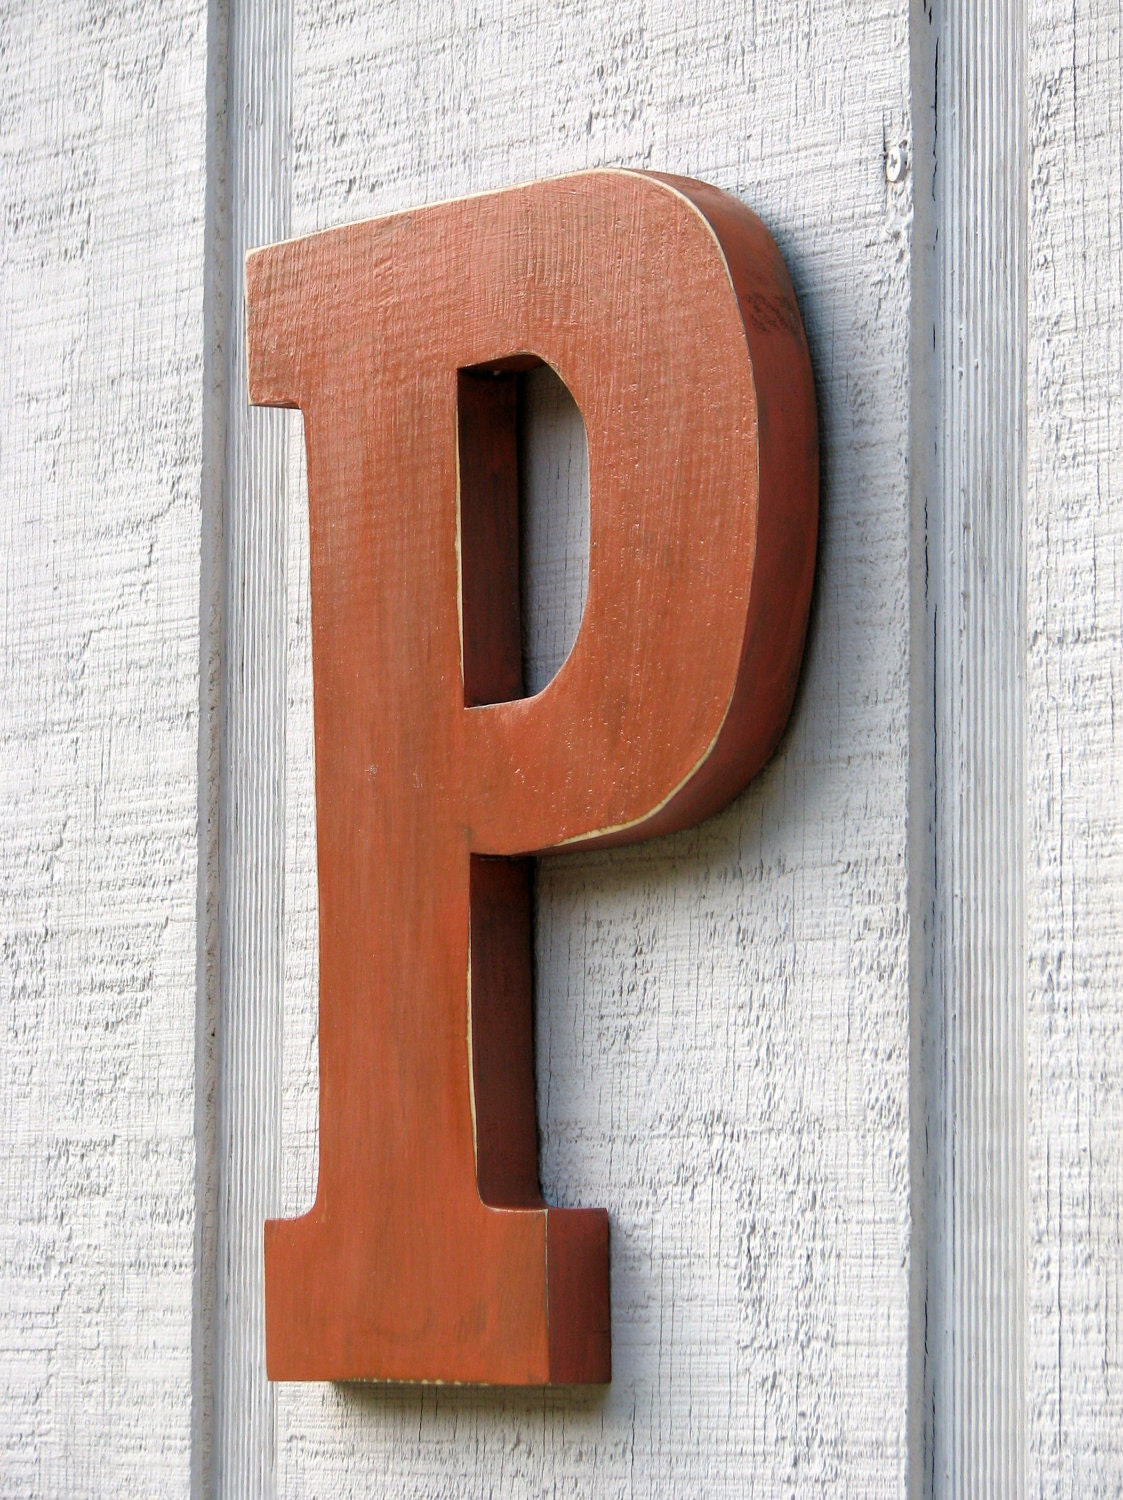 Shabby chic 12 rustic wooden large letter p distressed for Large wooden letter p